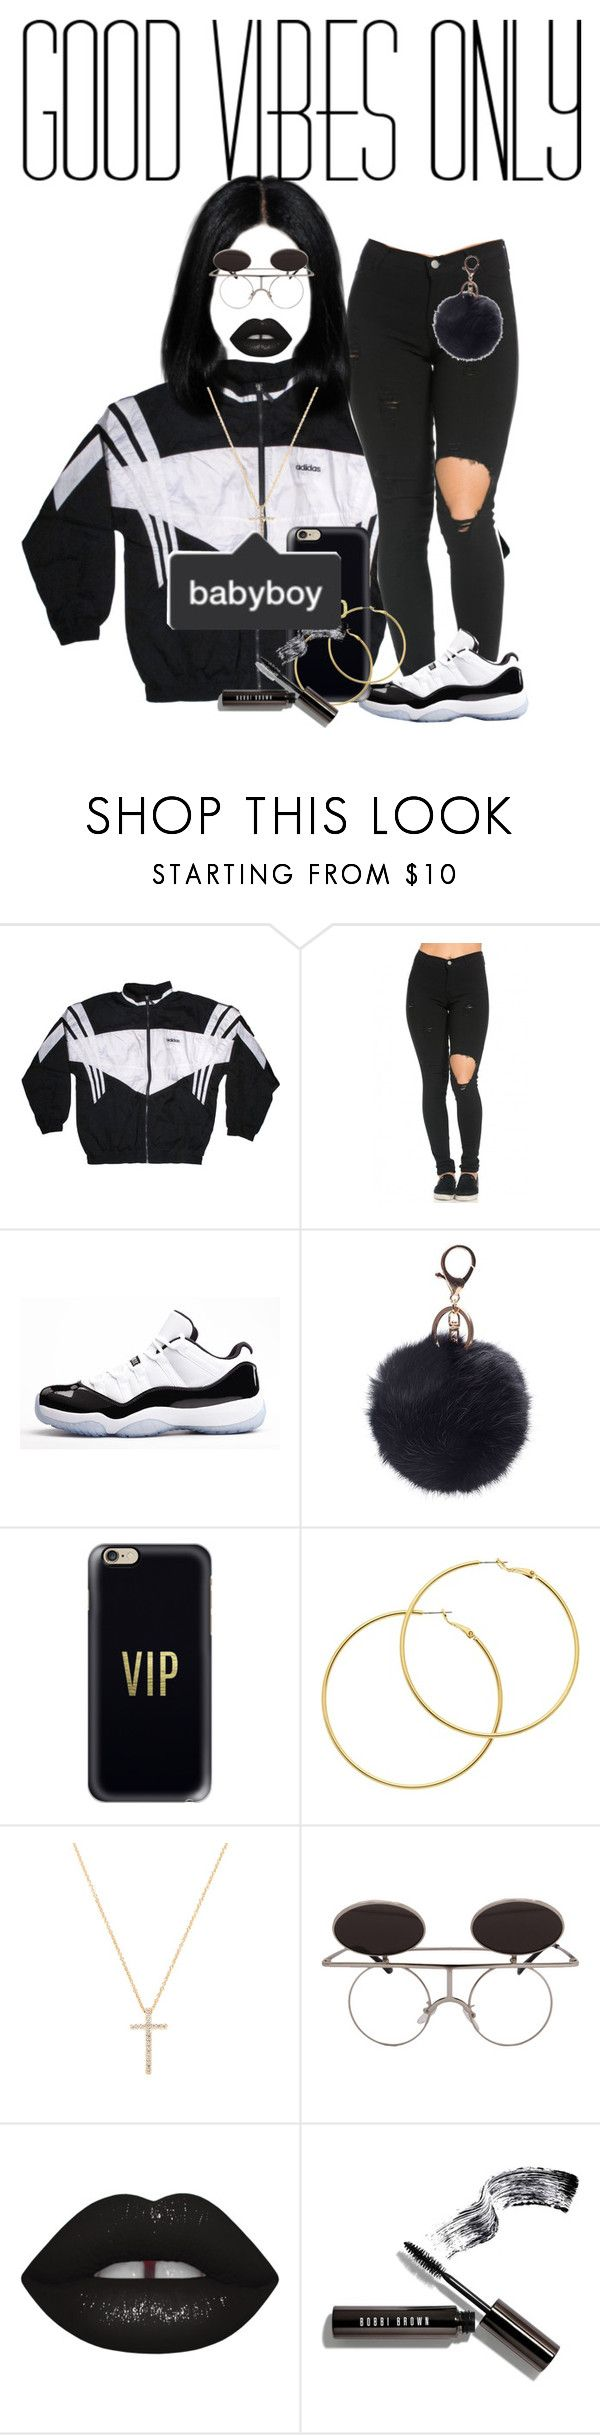 """Black describe my attitude 💀♠️"" by blackprincessss ❤ liked on Polyvore featuring adidas, Concord, Casetify, Melissa Odabash, Nephora and Bobbi Brown Cosmetics"